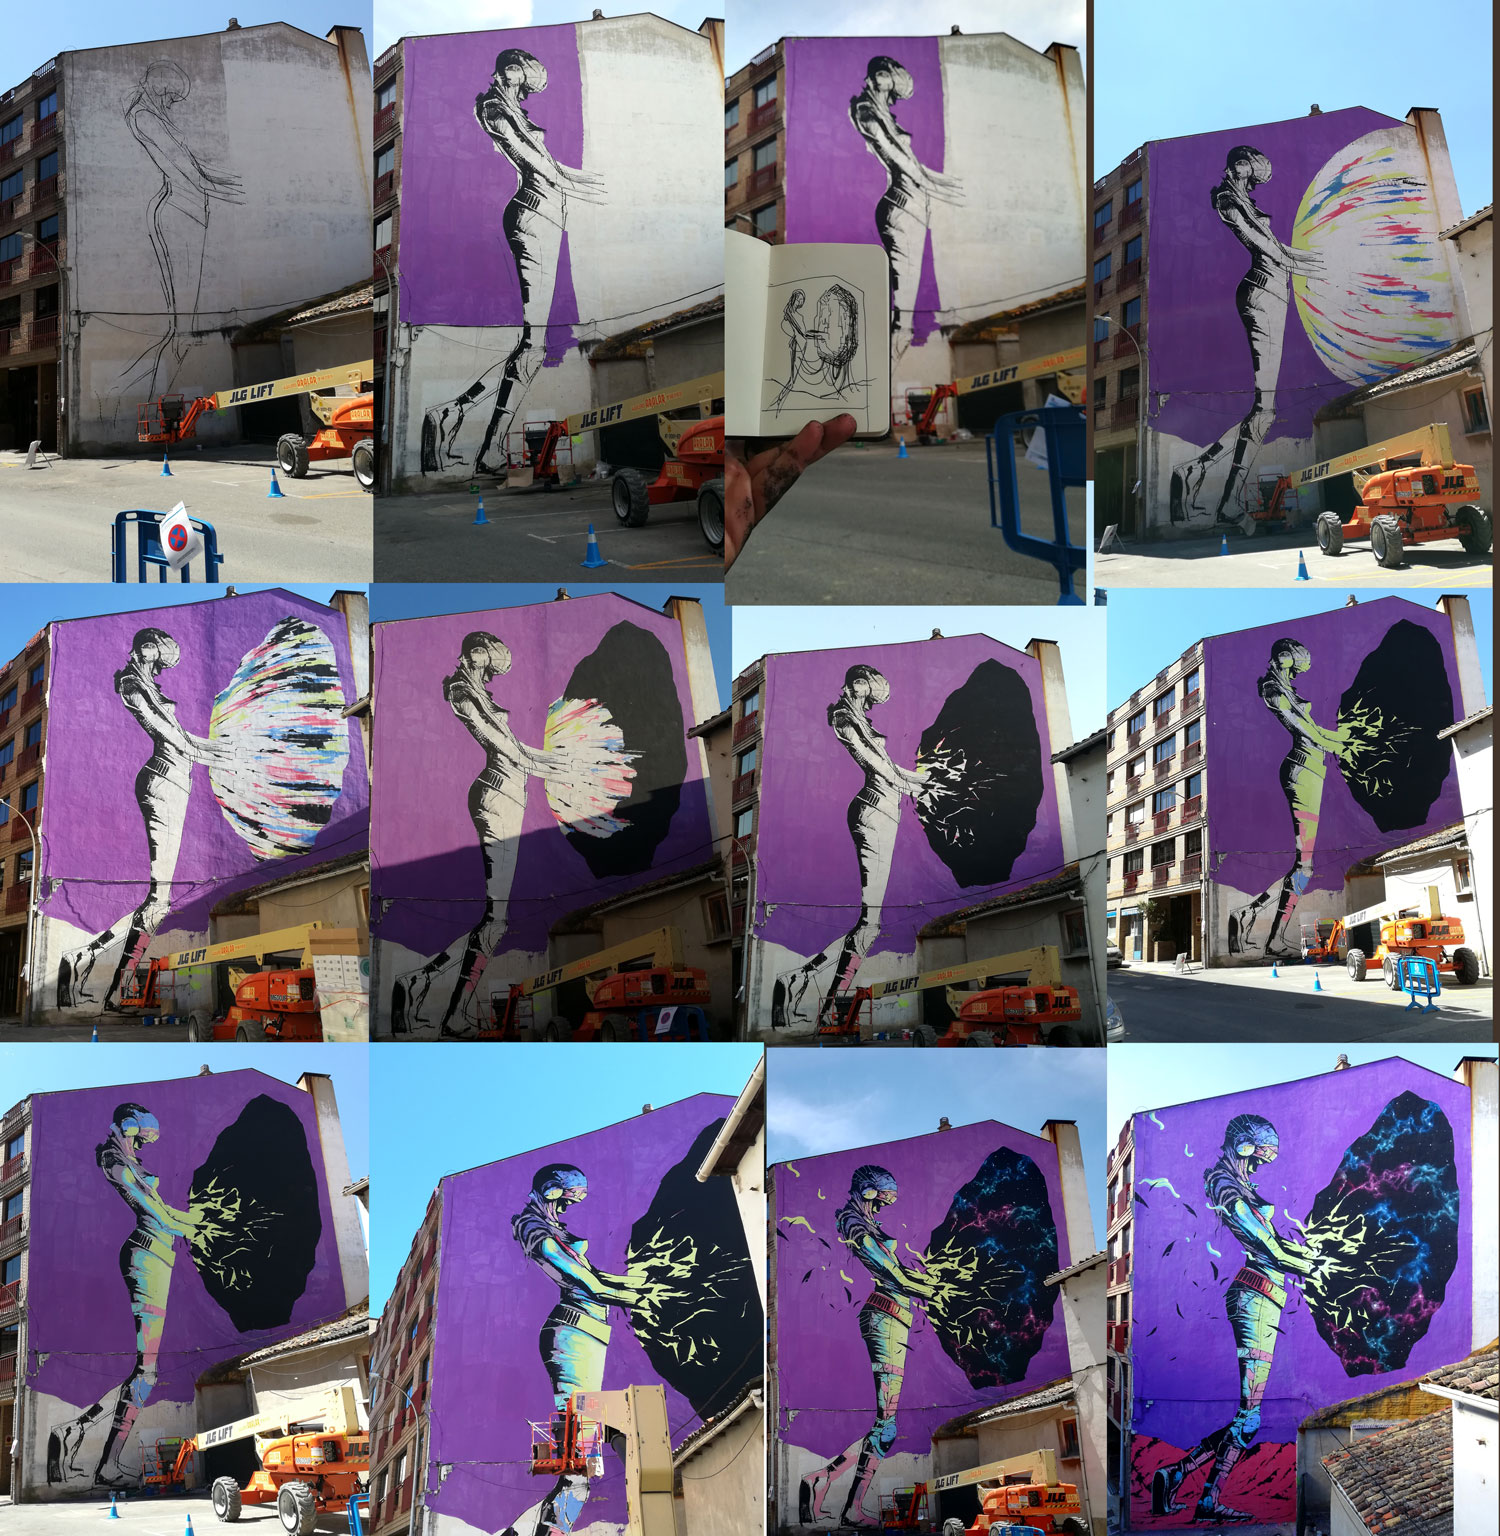 """A New Beginning"" by Deih in Spain Artes & contextos procesoweb"